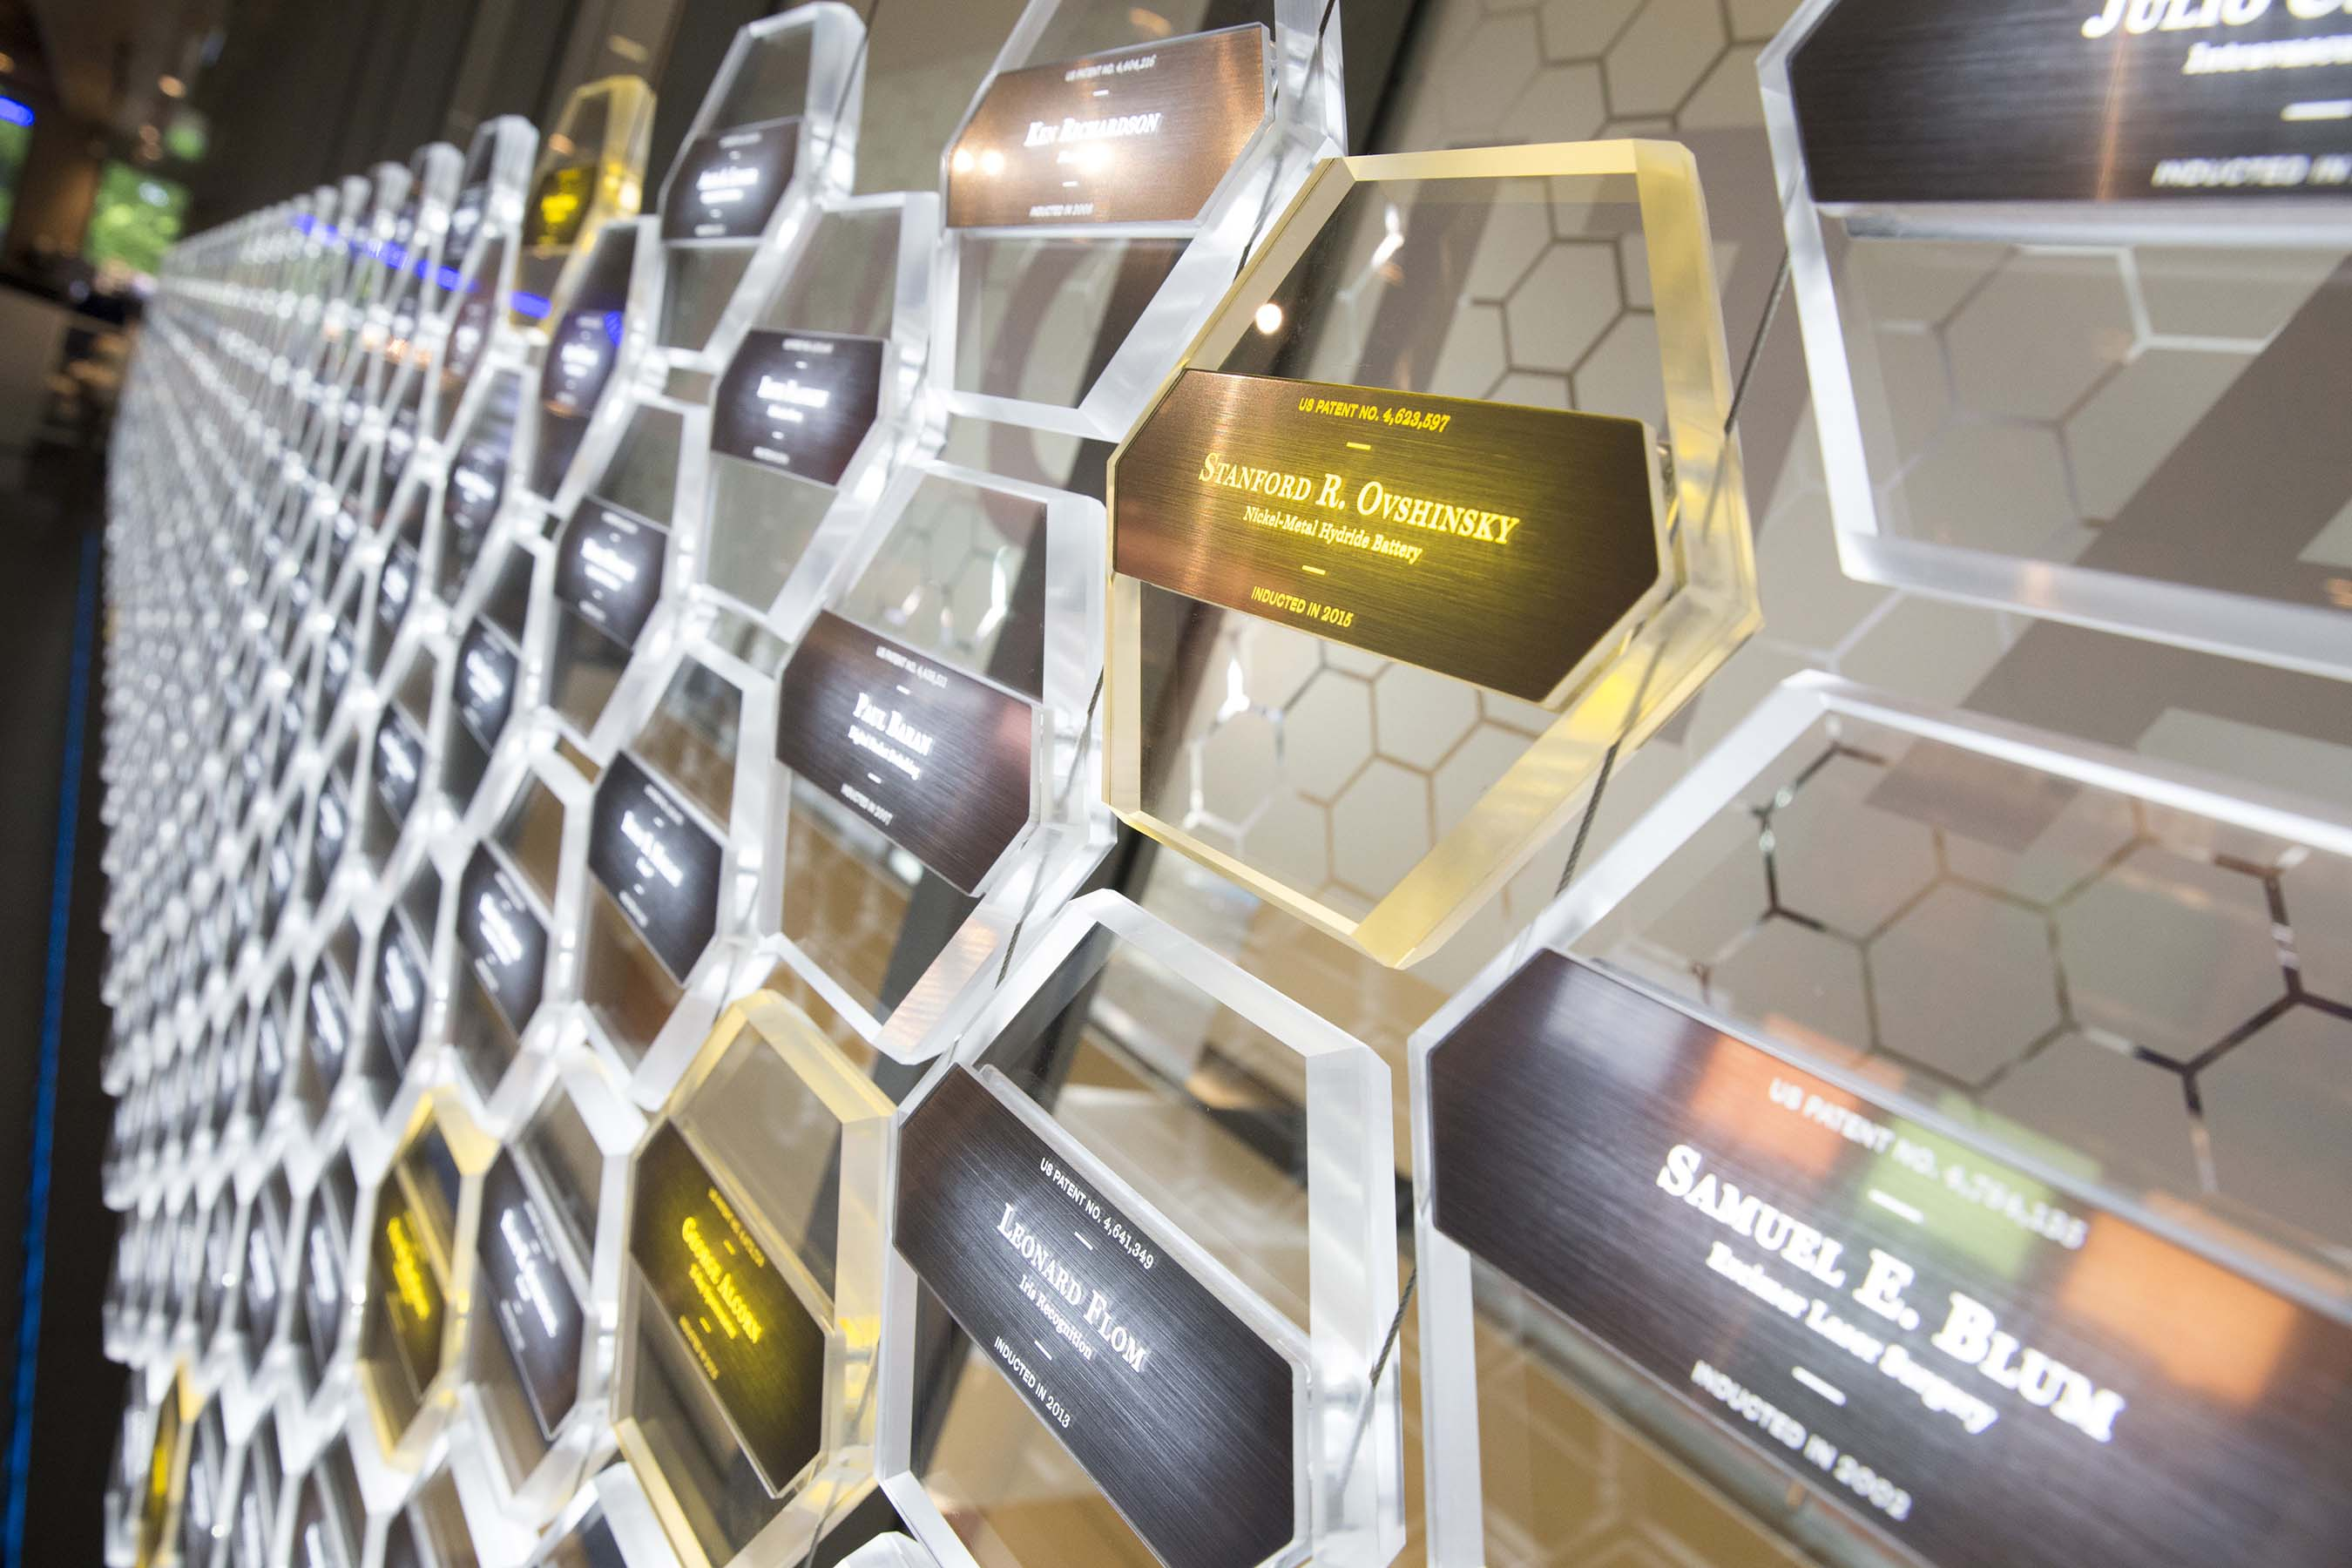 The individual hexagons, located within the museum, represent each National Inventors Hall of Fame Inductee. Together, they build the National Monument to Innovation™.